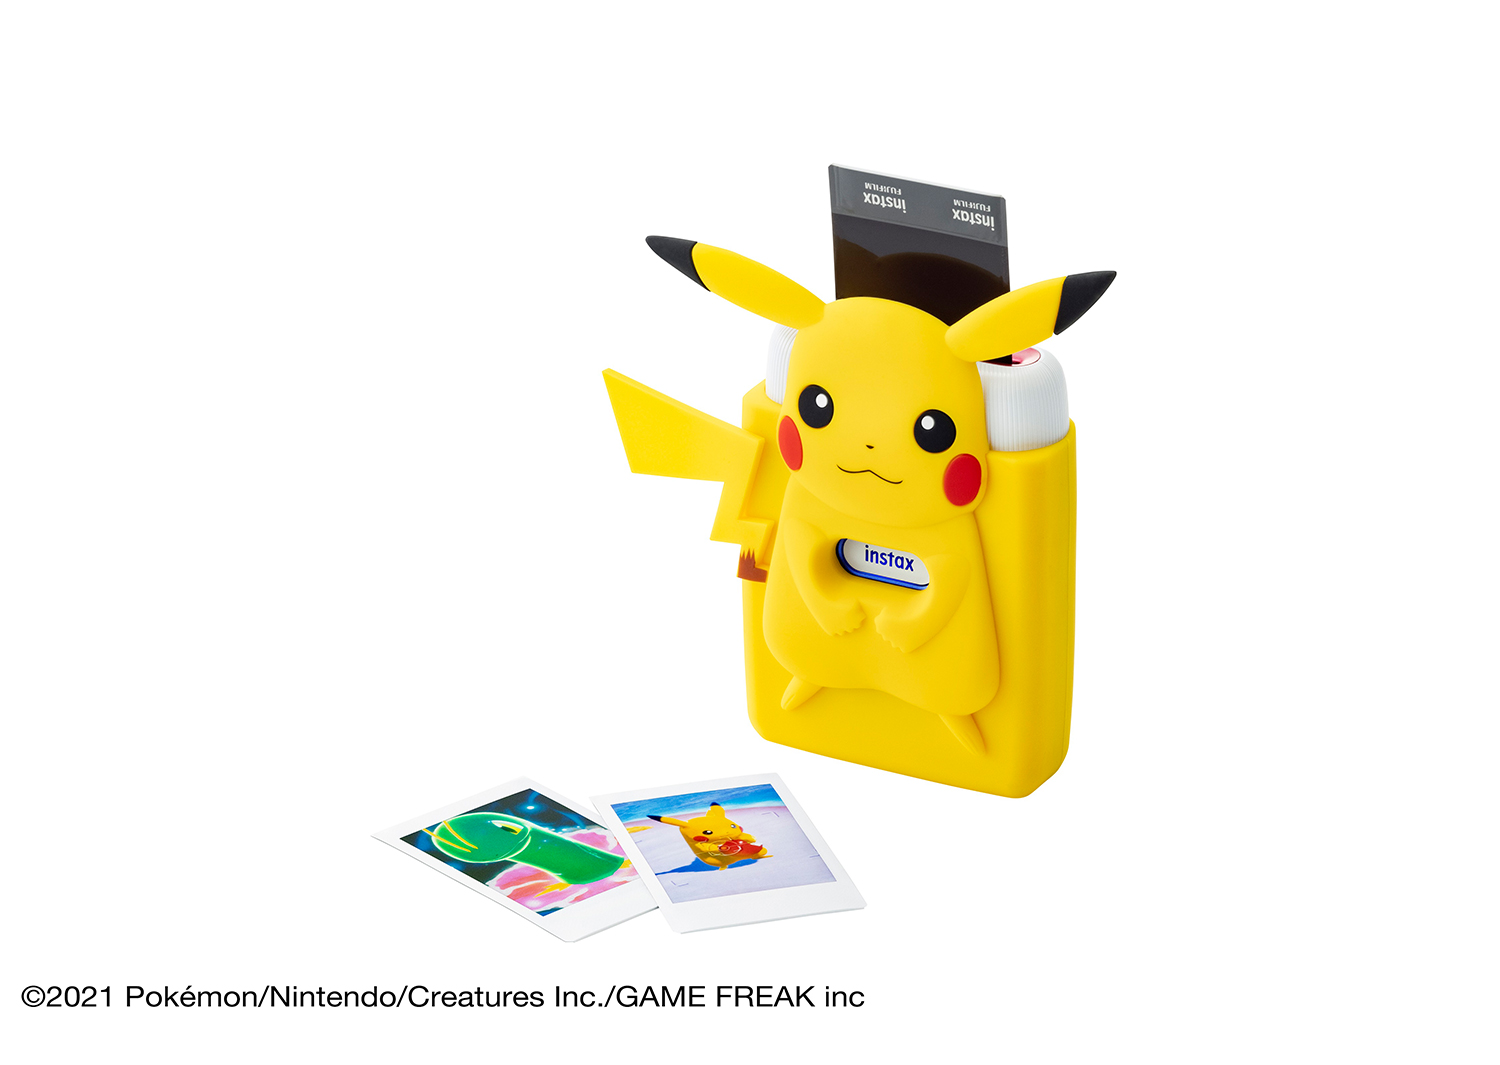 [Product Images]Special bundle kit with specially designed silicone case featuring Pikachu